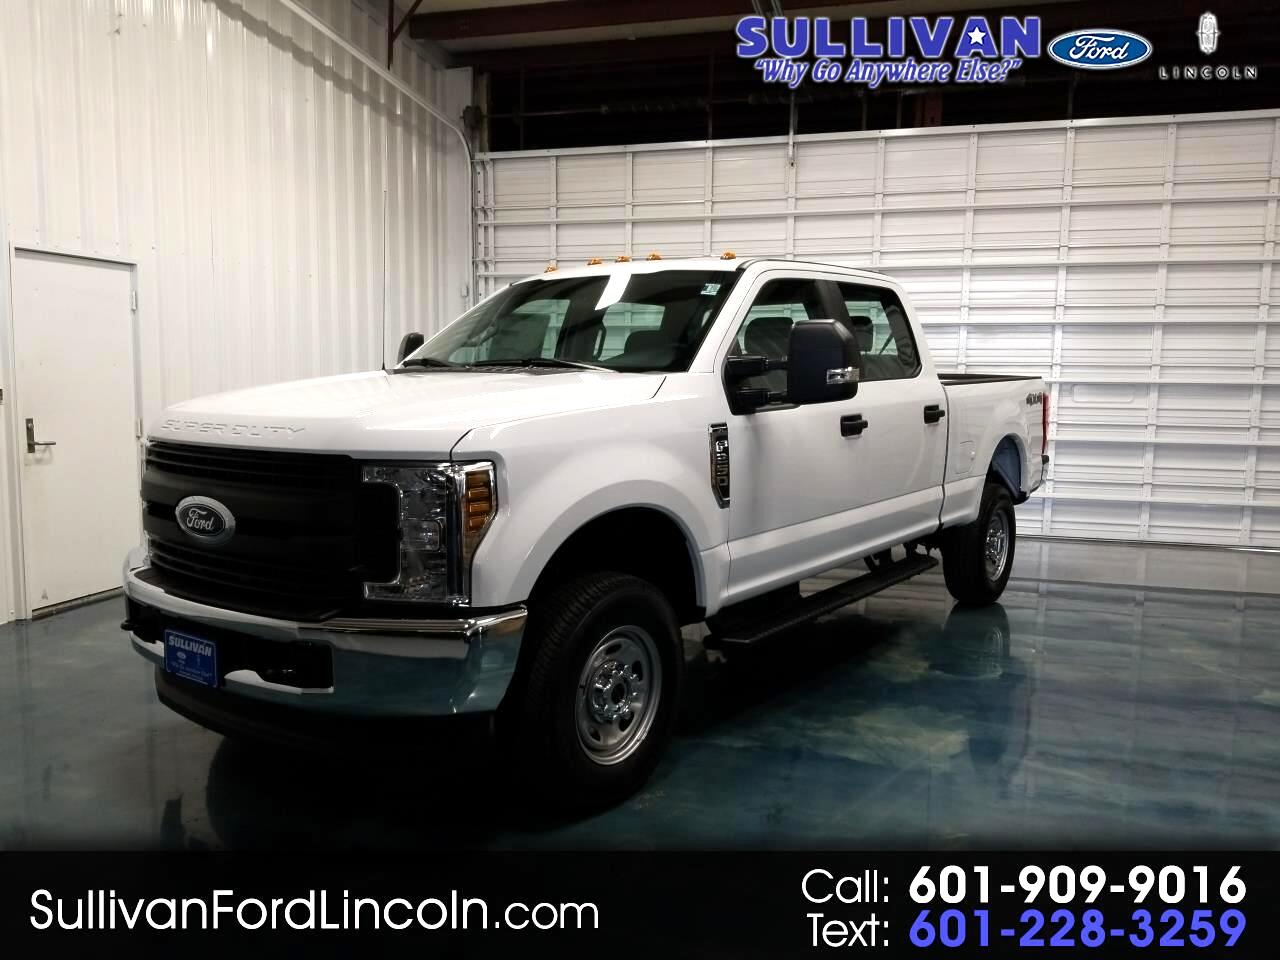 2019 Ford Super Duty F-250 SRW 4WD Crew Cab 172